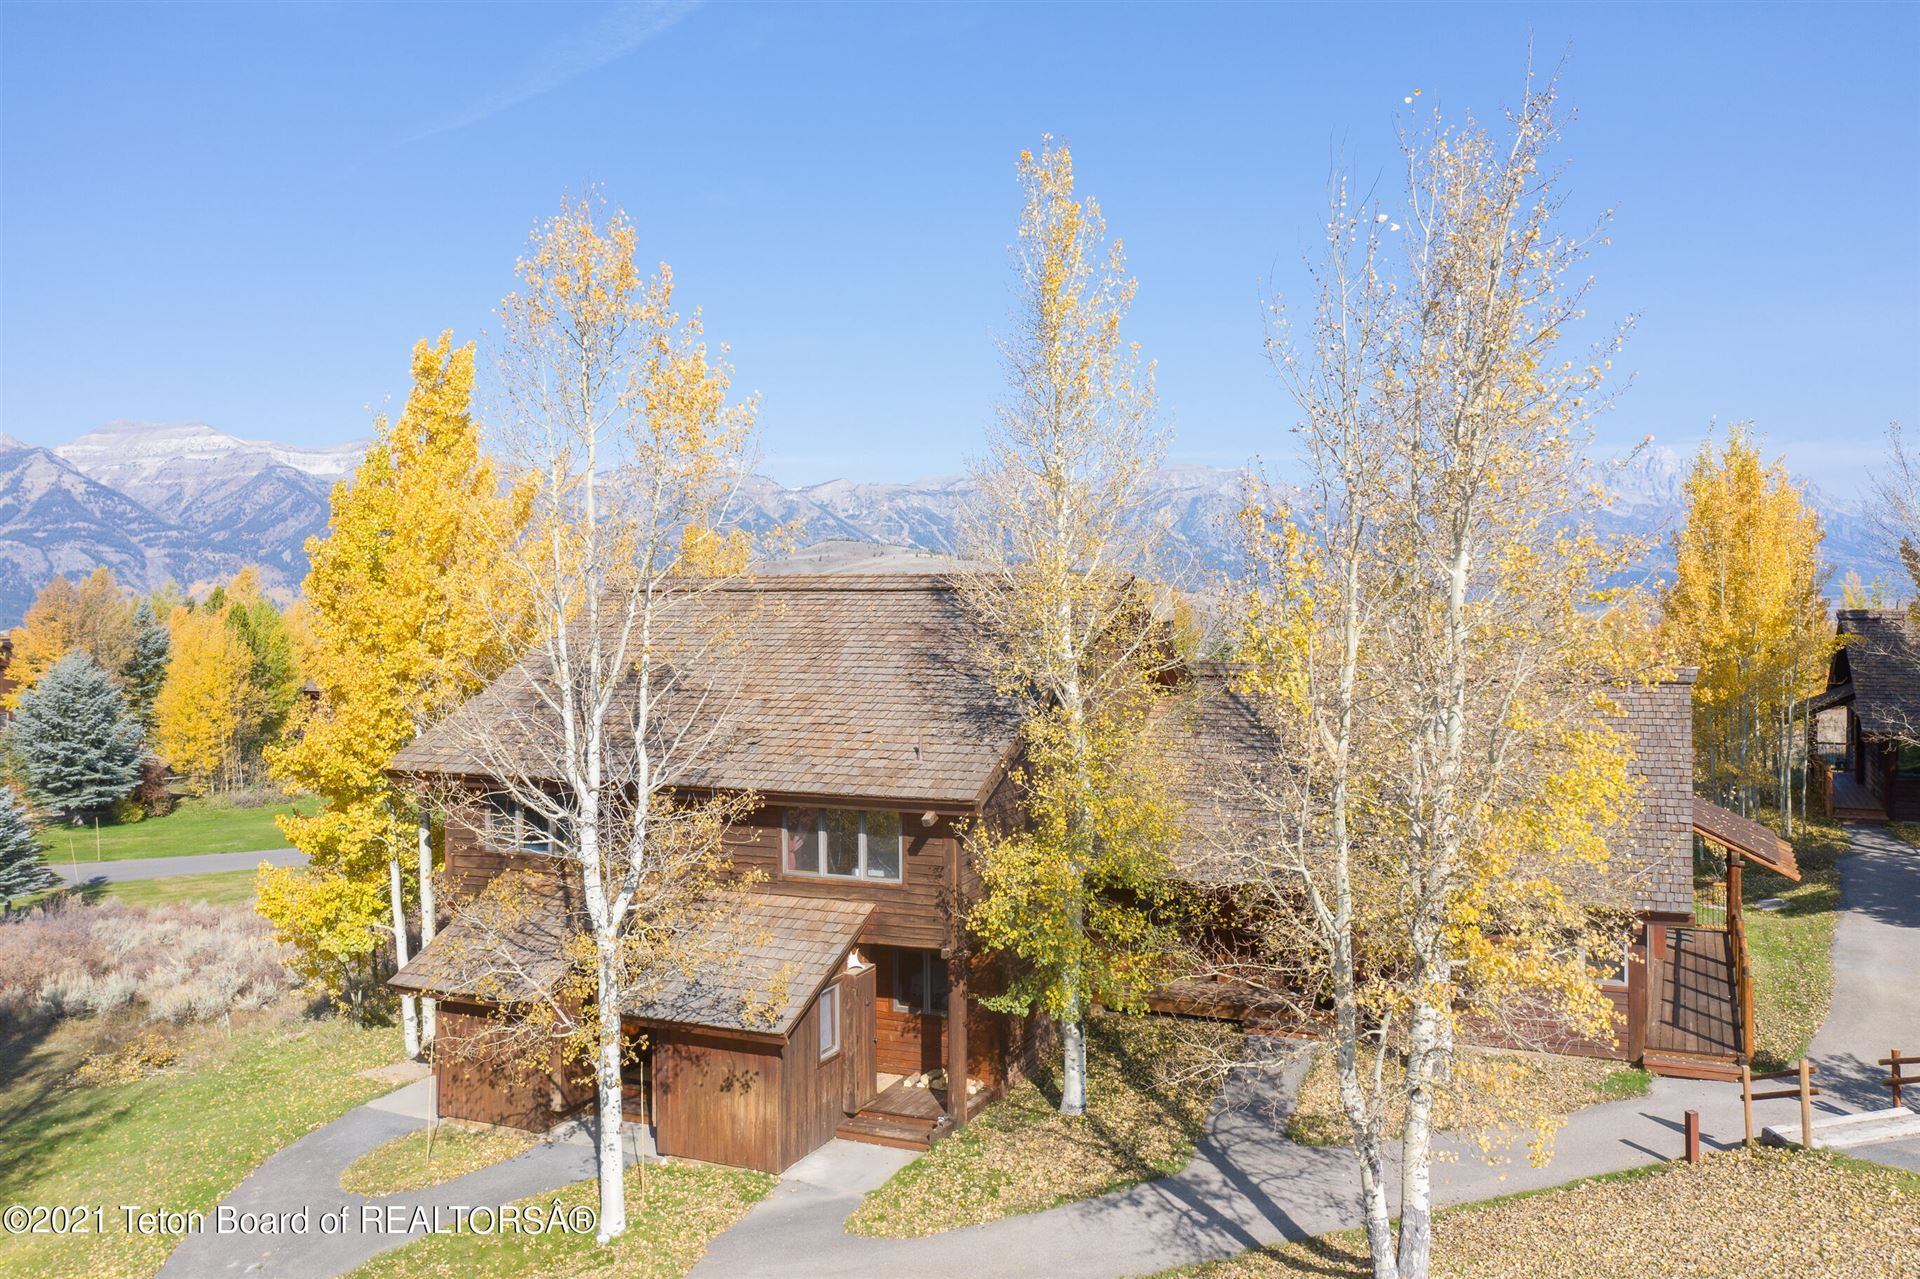 Photo for 1653 N HARVEST DANCE ROAD #3192-93, Jackson, WY 83001 (MLS # 21-3574)